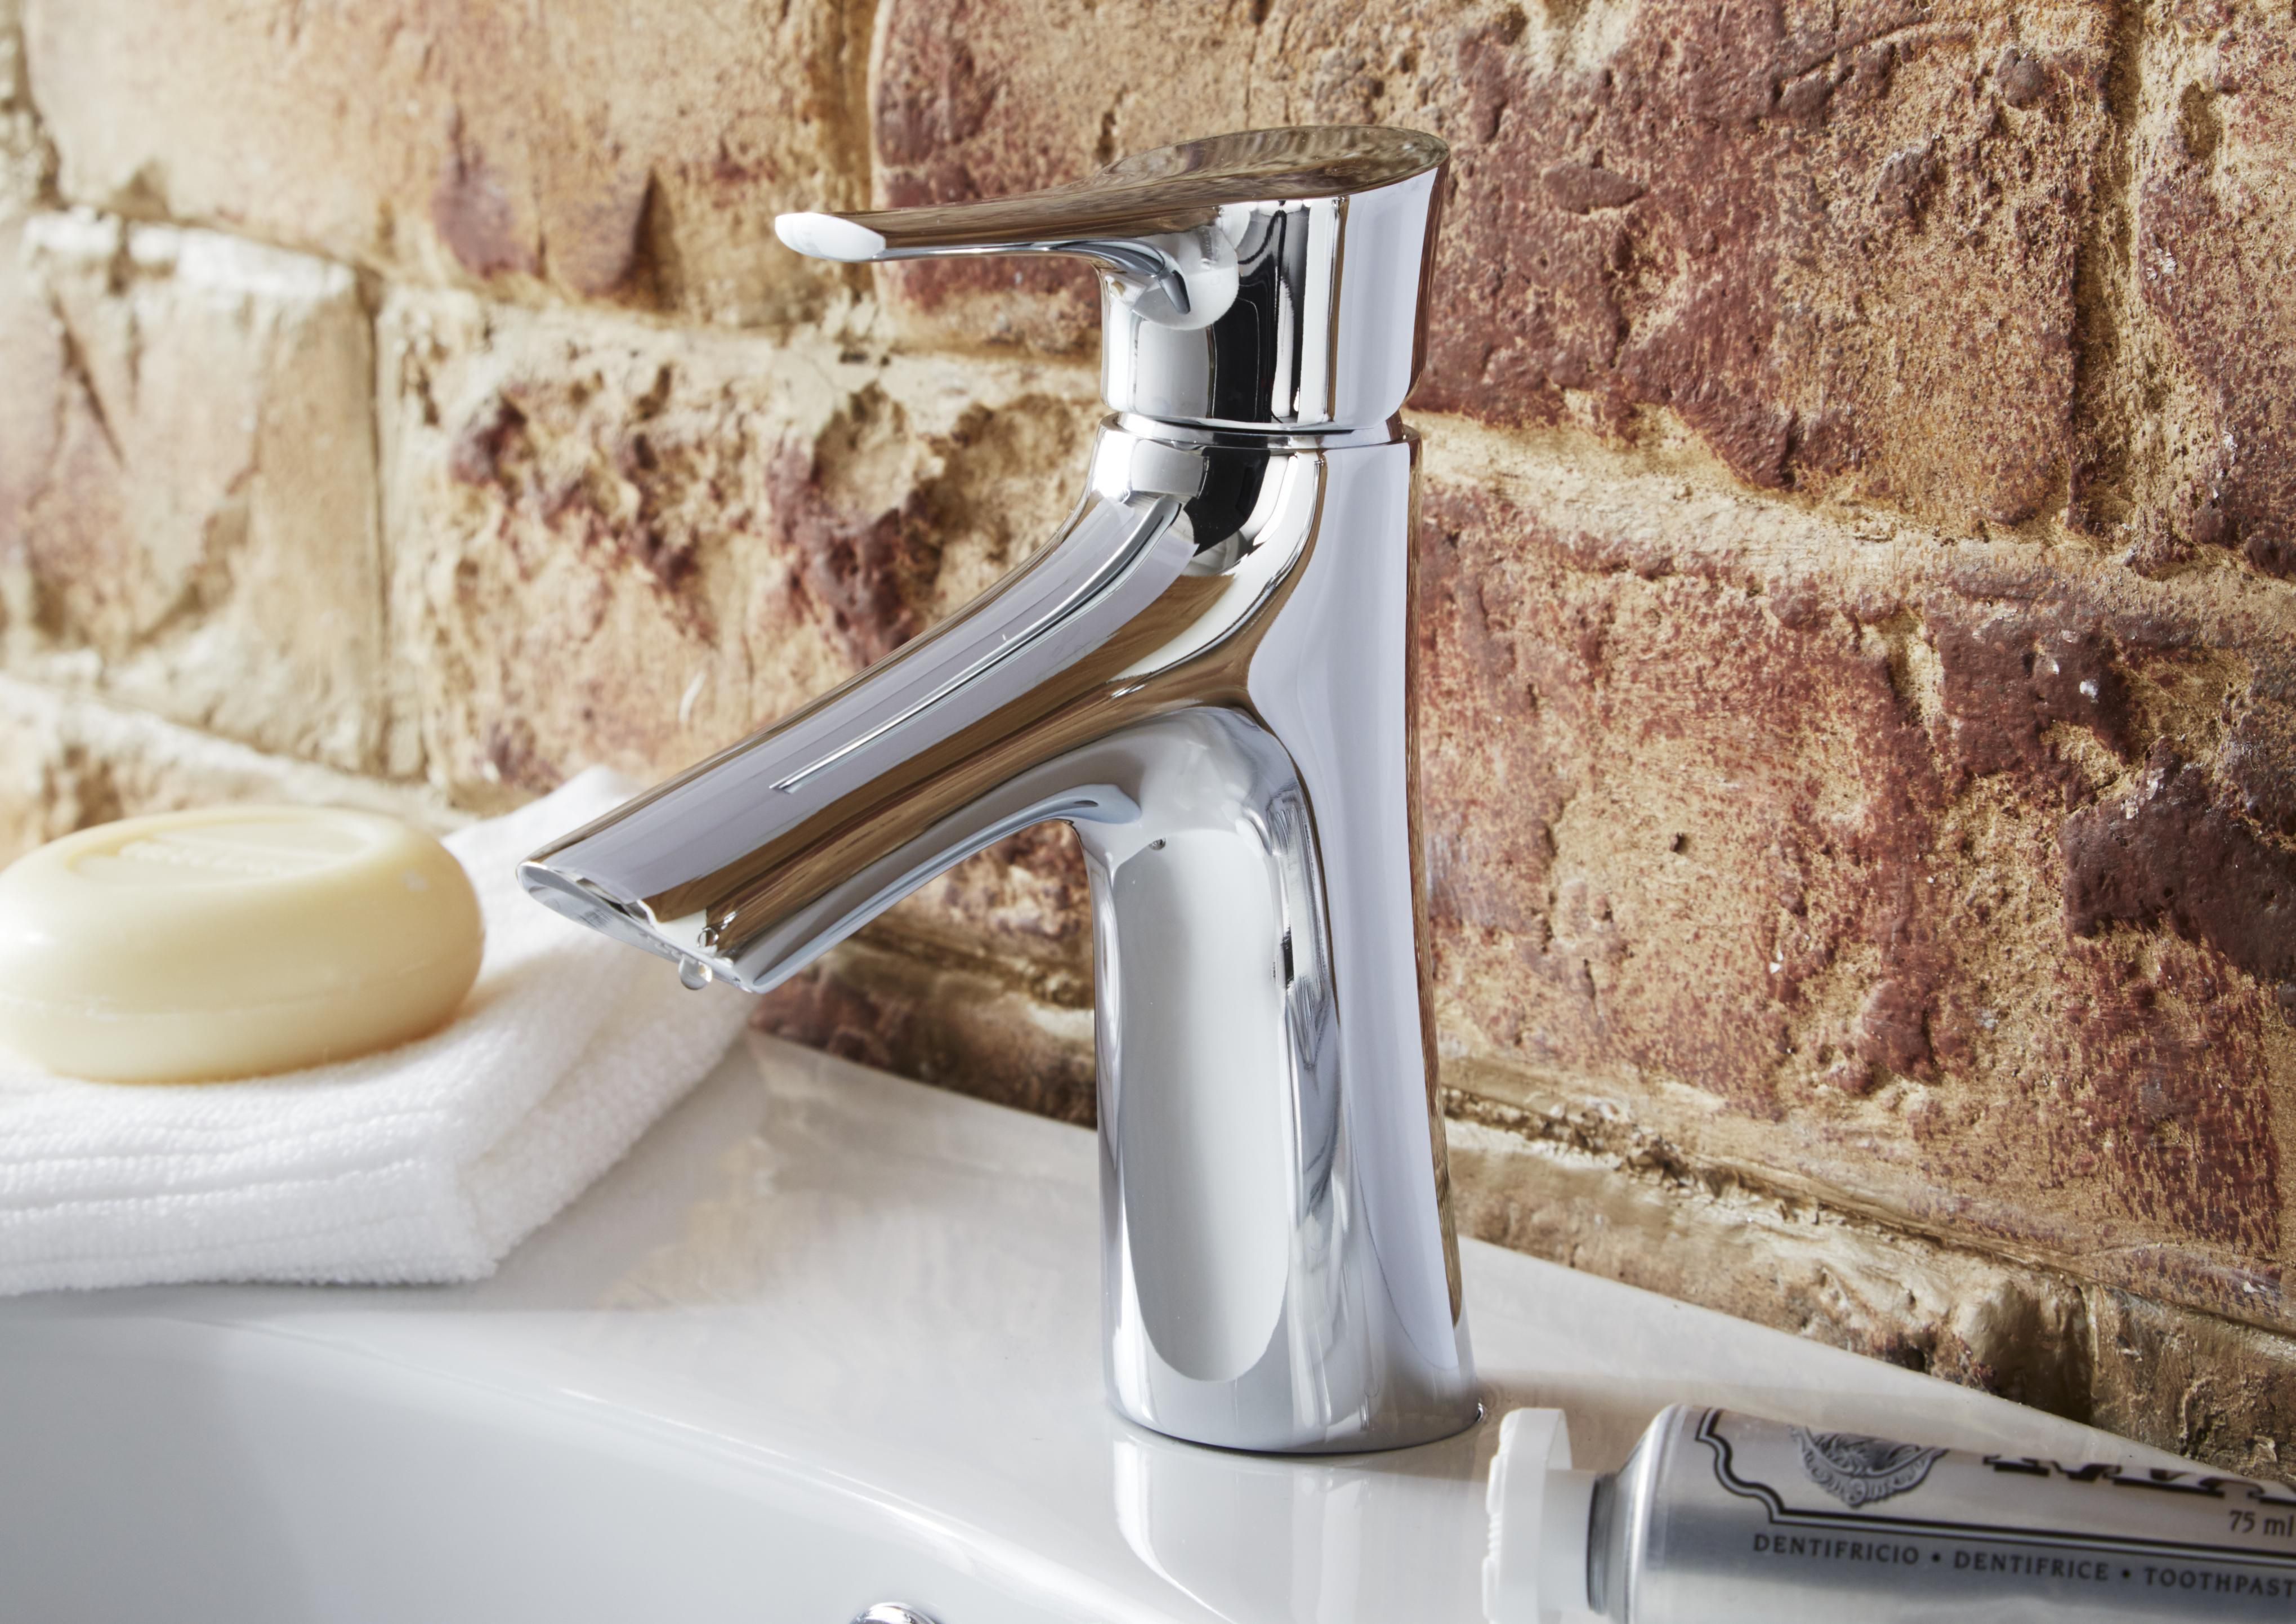 Bathroom taps buying guide | Ideas & Advice | DIY at B&Q